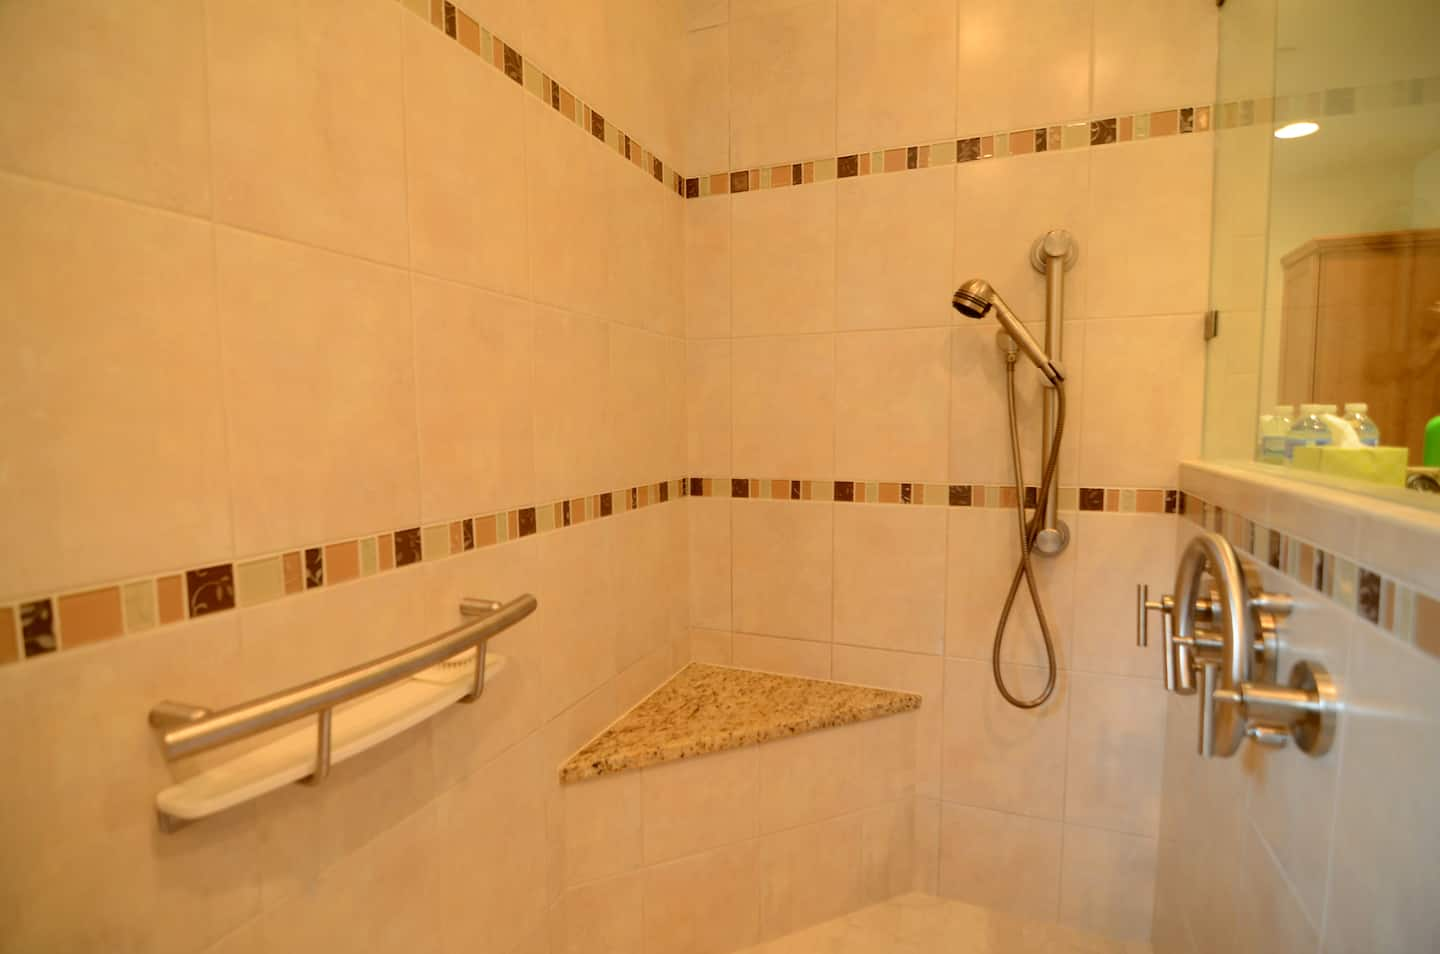 Bathroom Remodel For Seniors pros and cons of walk-in tubs | angie's list